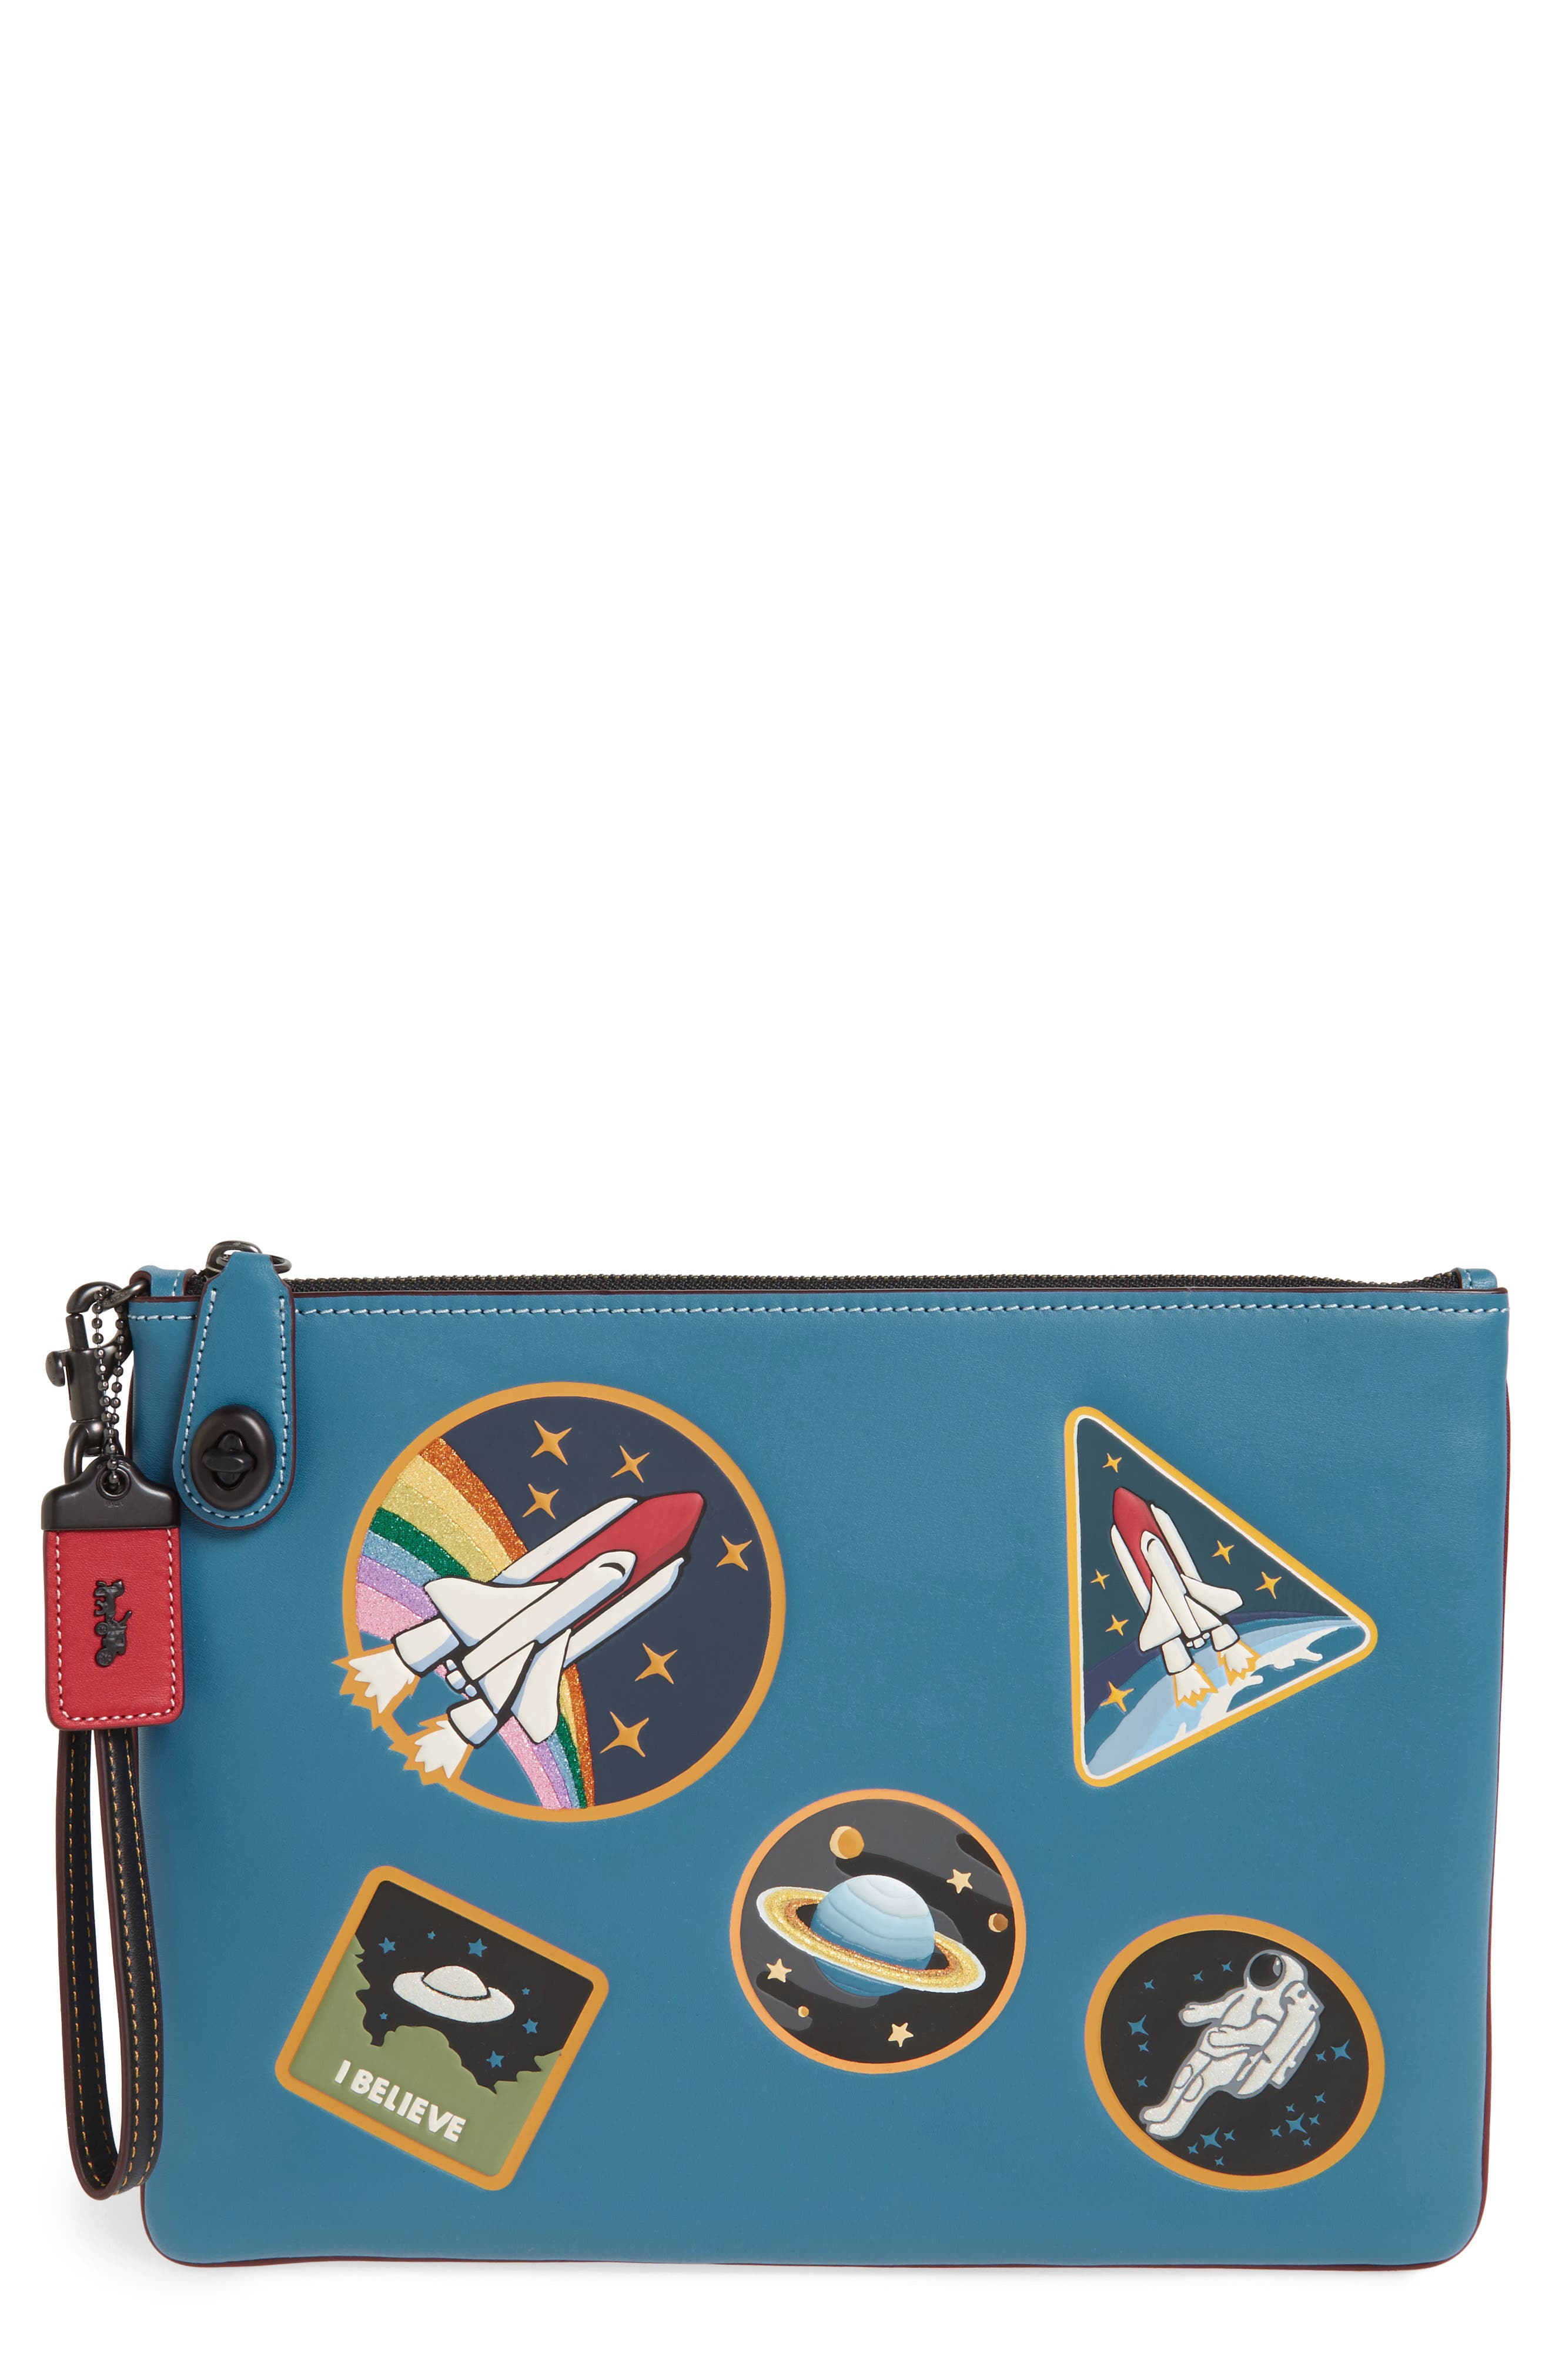 COACH 1941 Space Patches Leather Wristlet